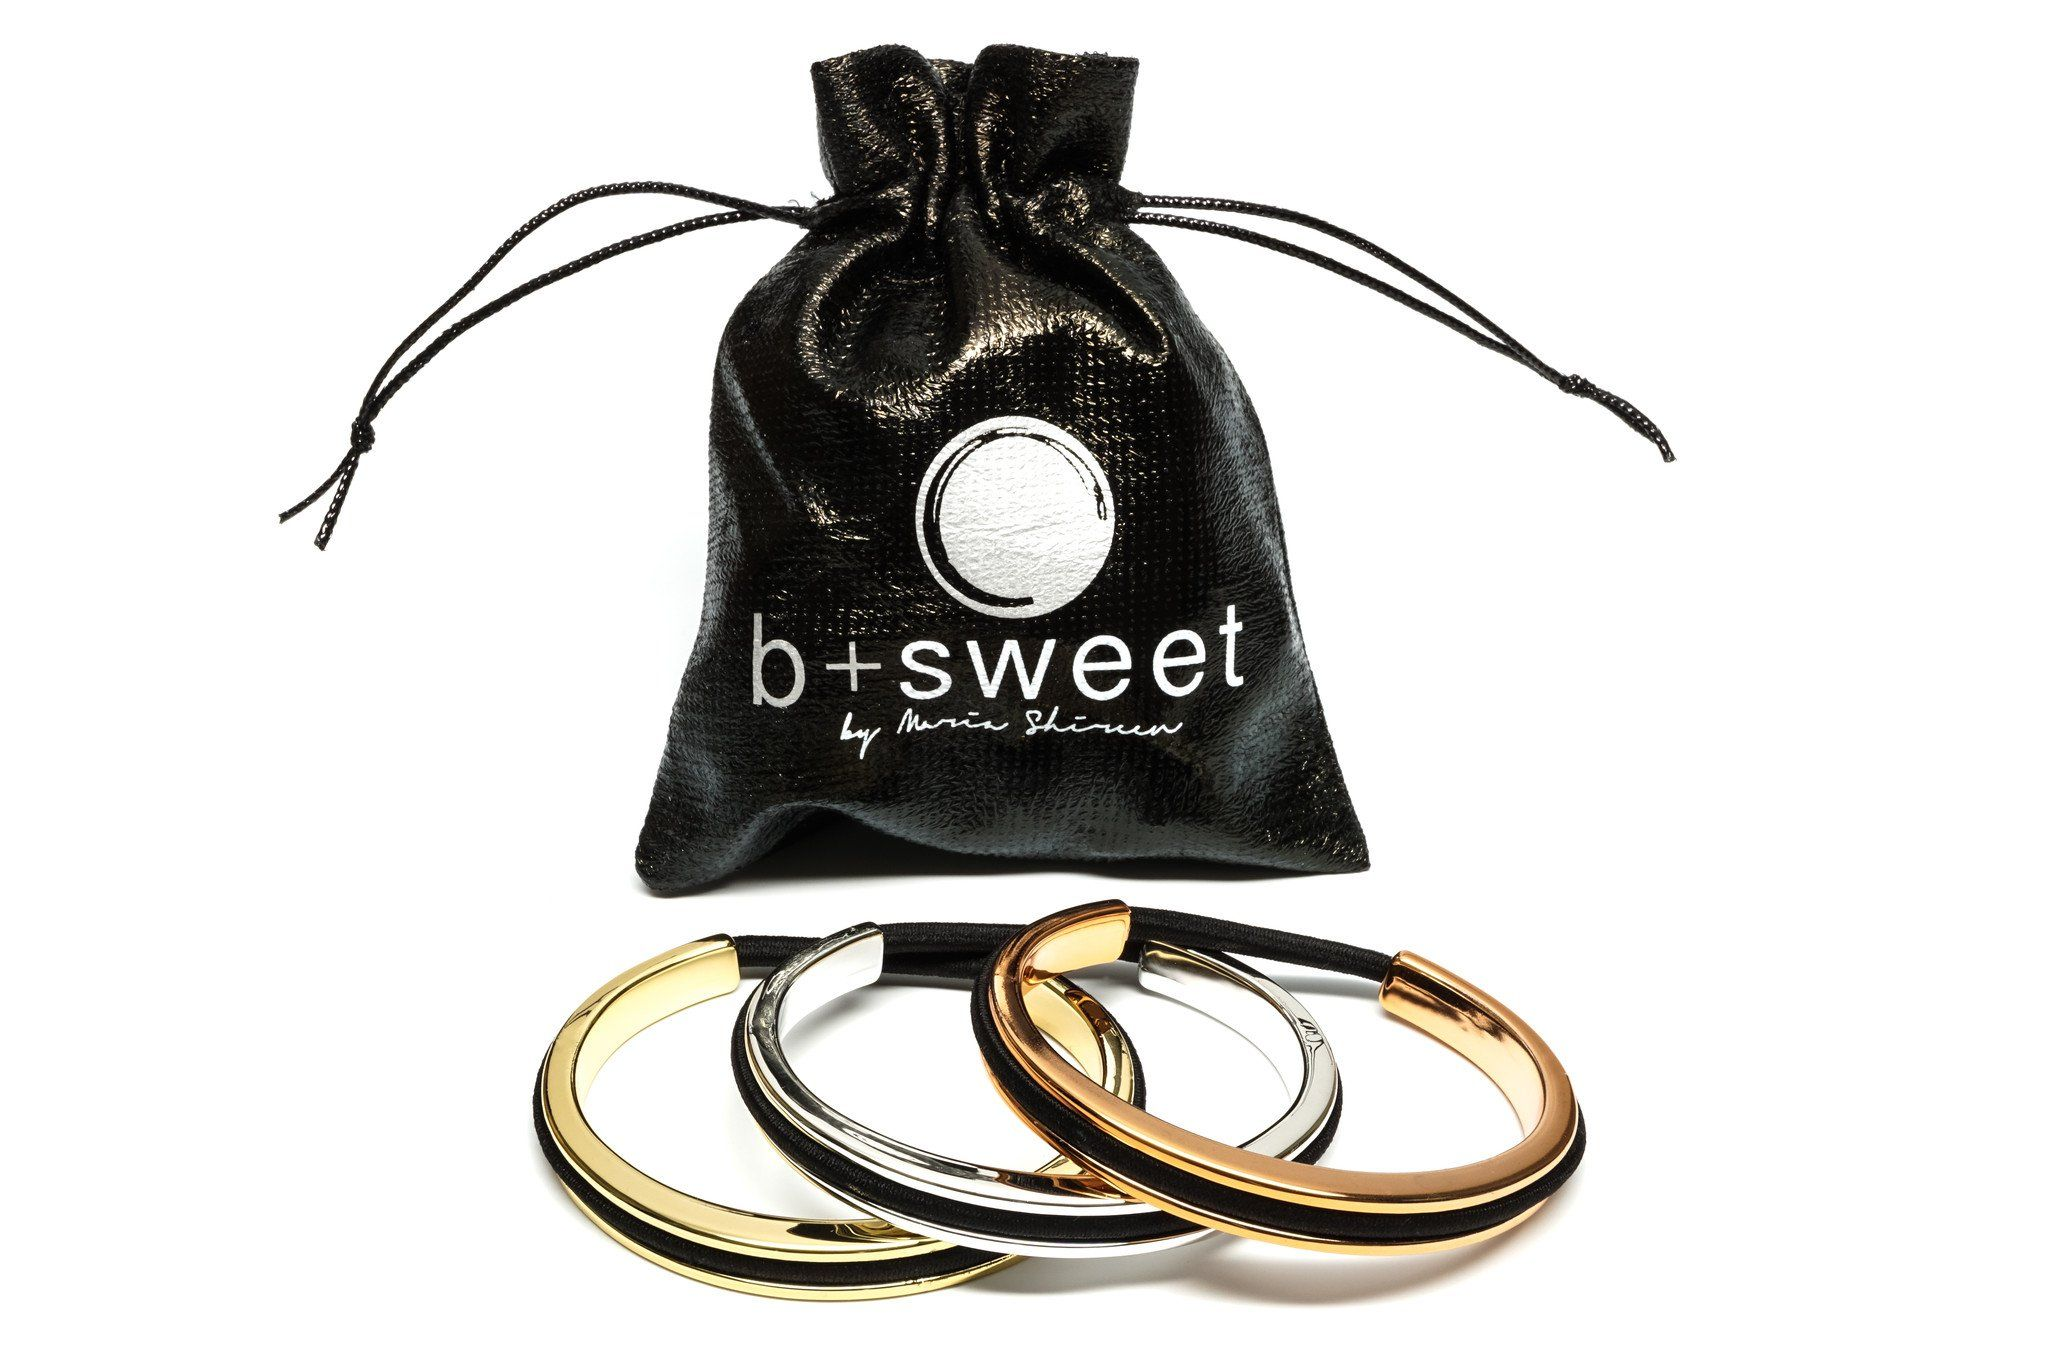 Hair tie bracelet by Maria Shireen in BPA free plastic with metallic plated finish